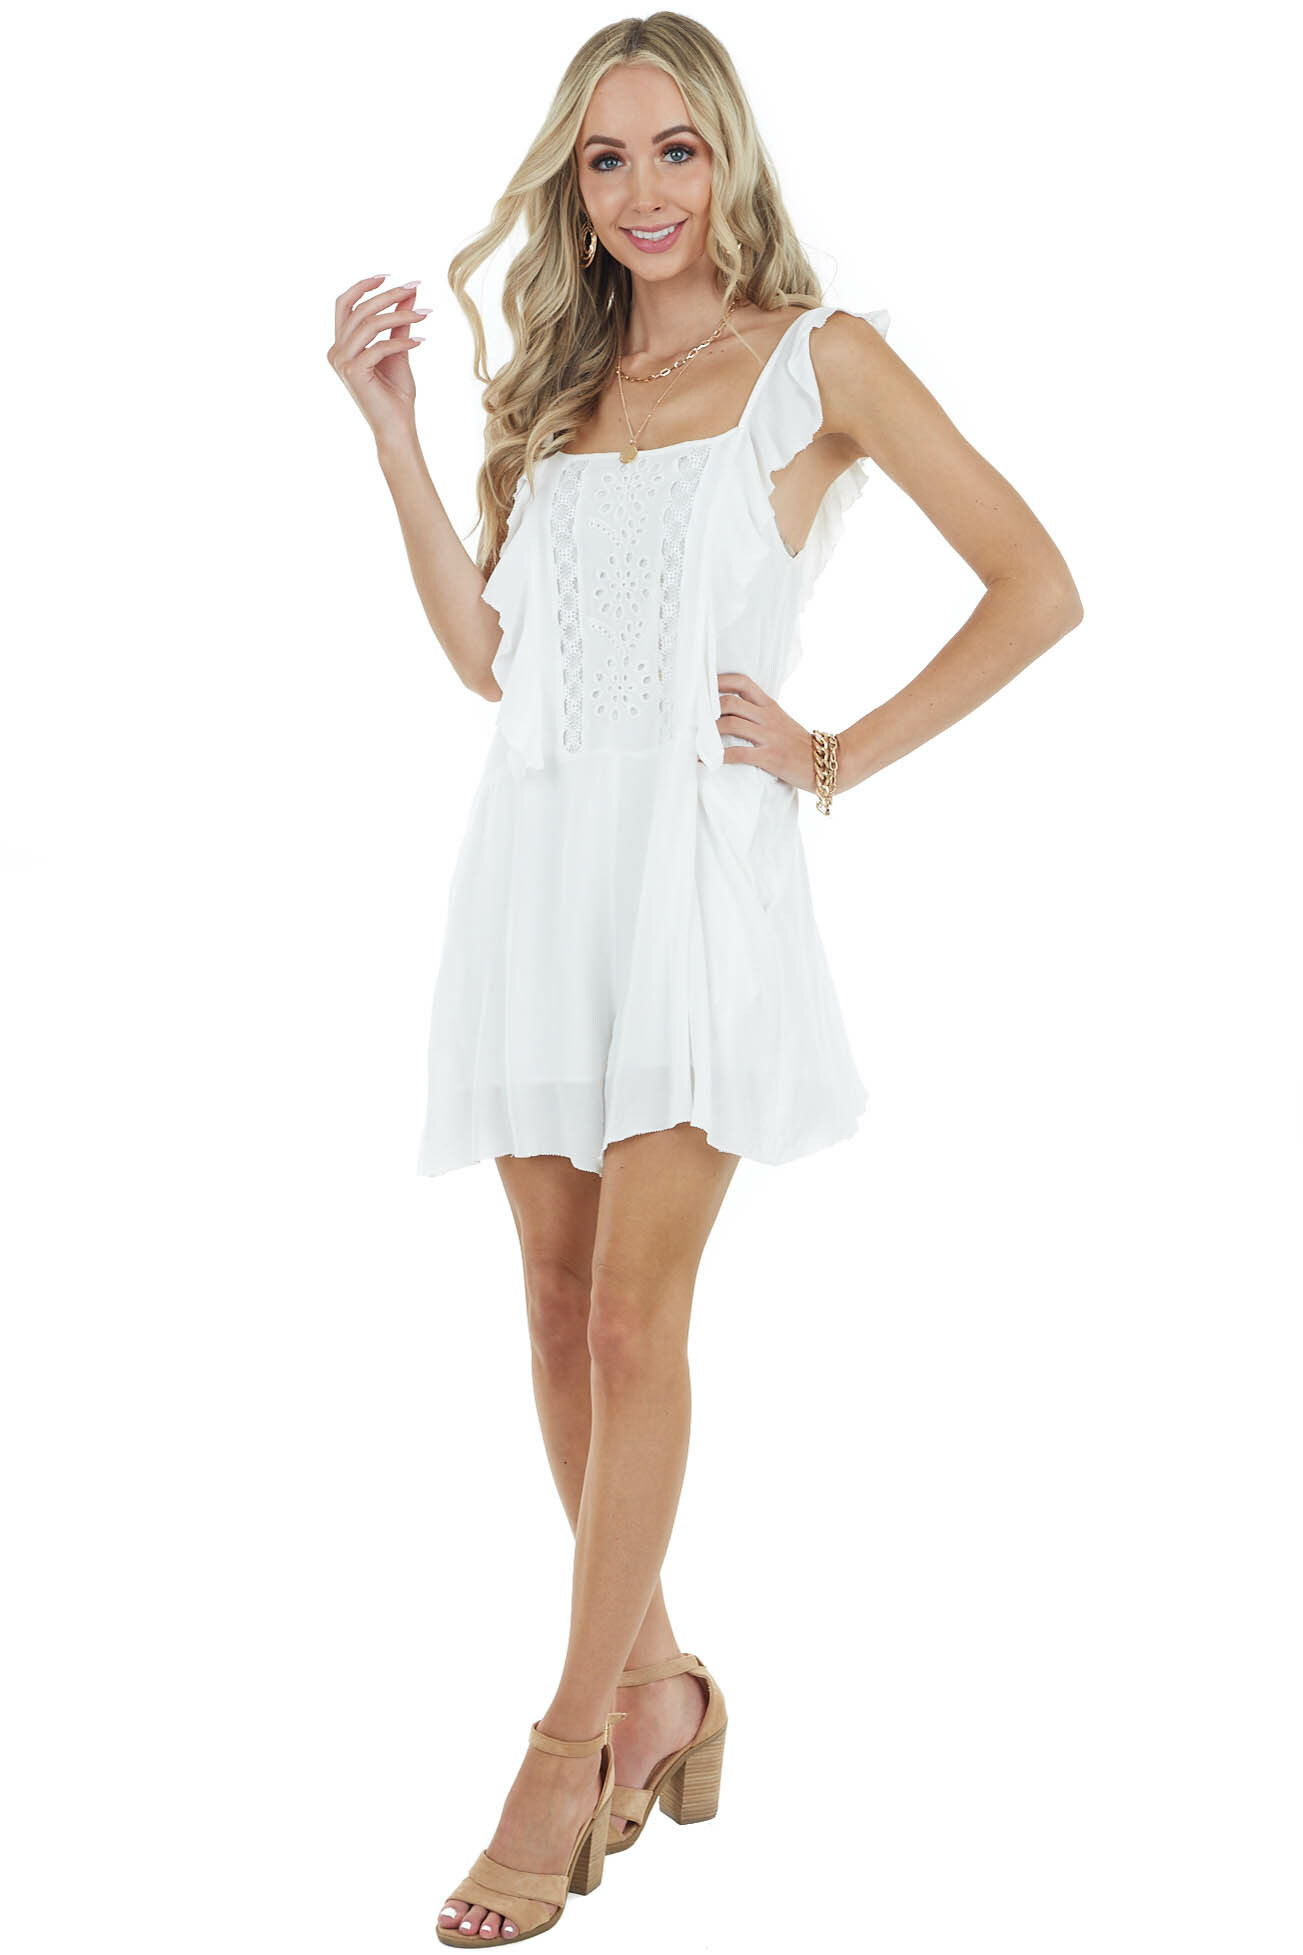 Ivory Sleeveless Romper with Ruffle and Lace Details